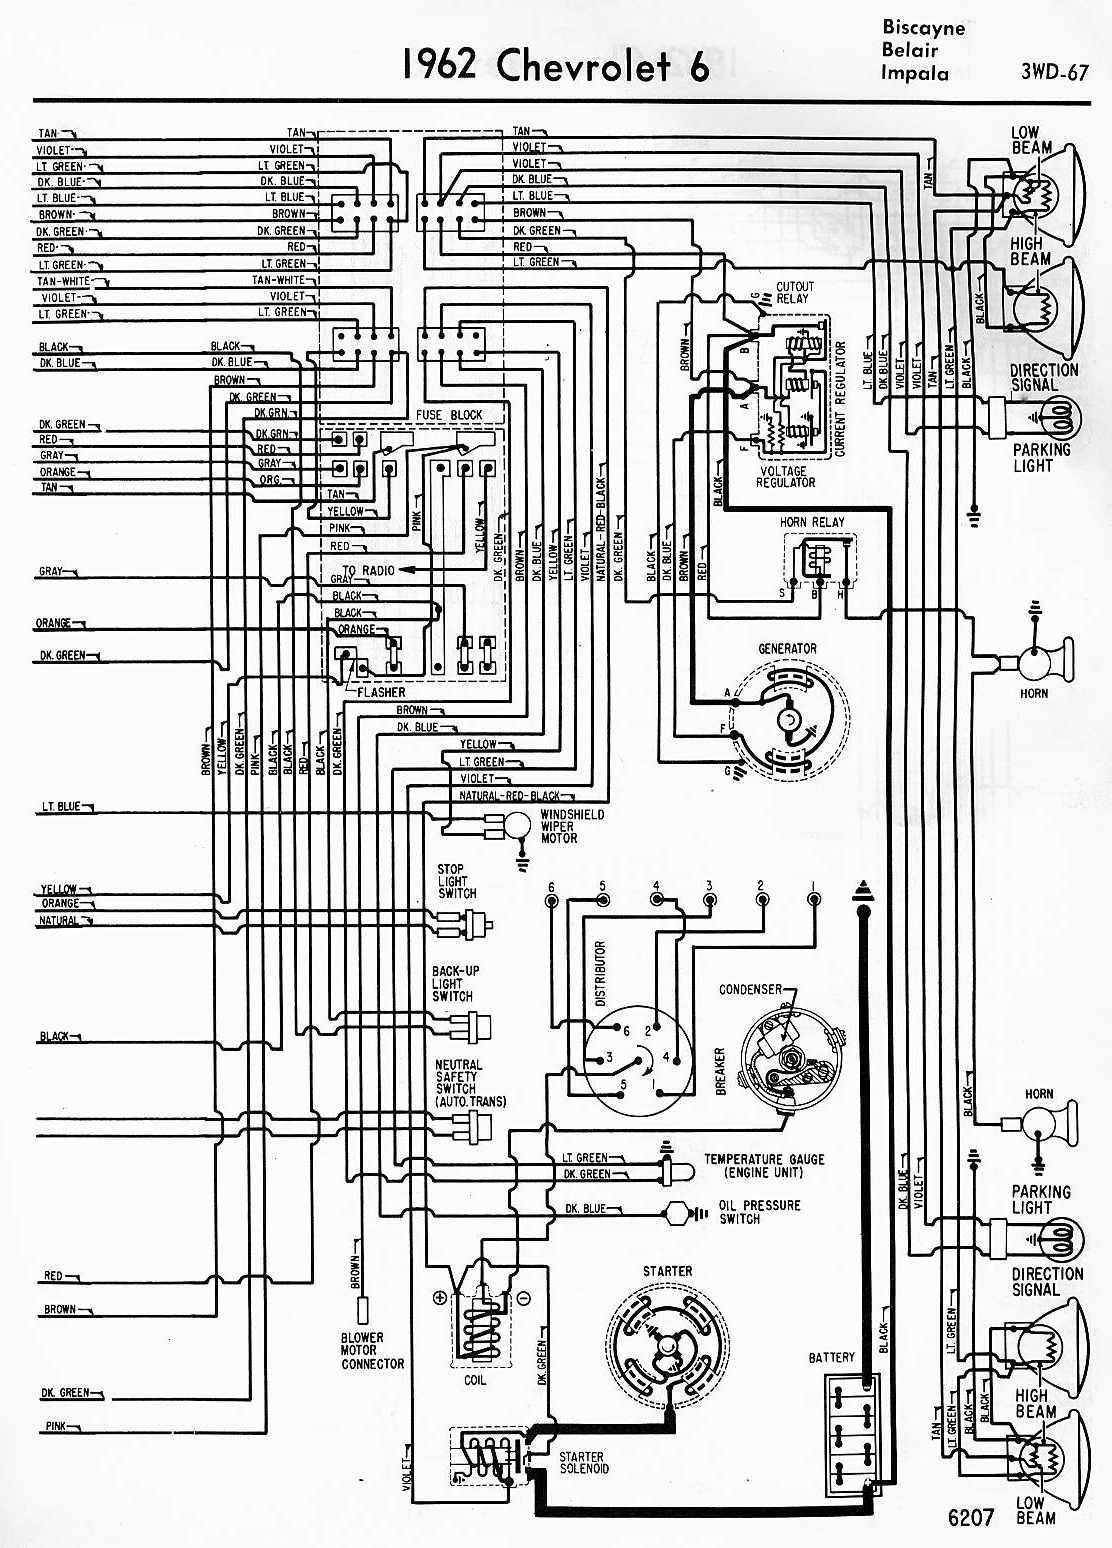 Outstanding Home Run Wiring Gallery - Electrical System Block ...